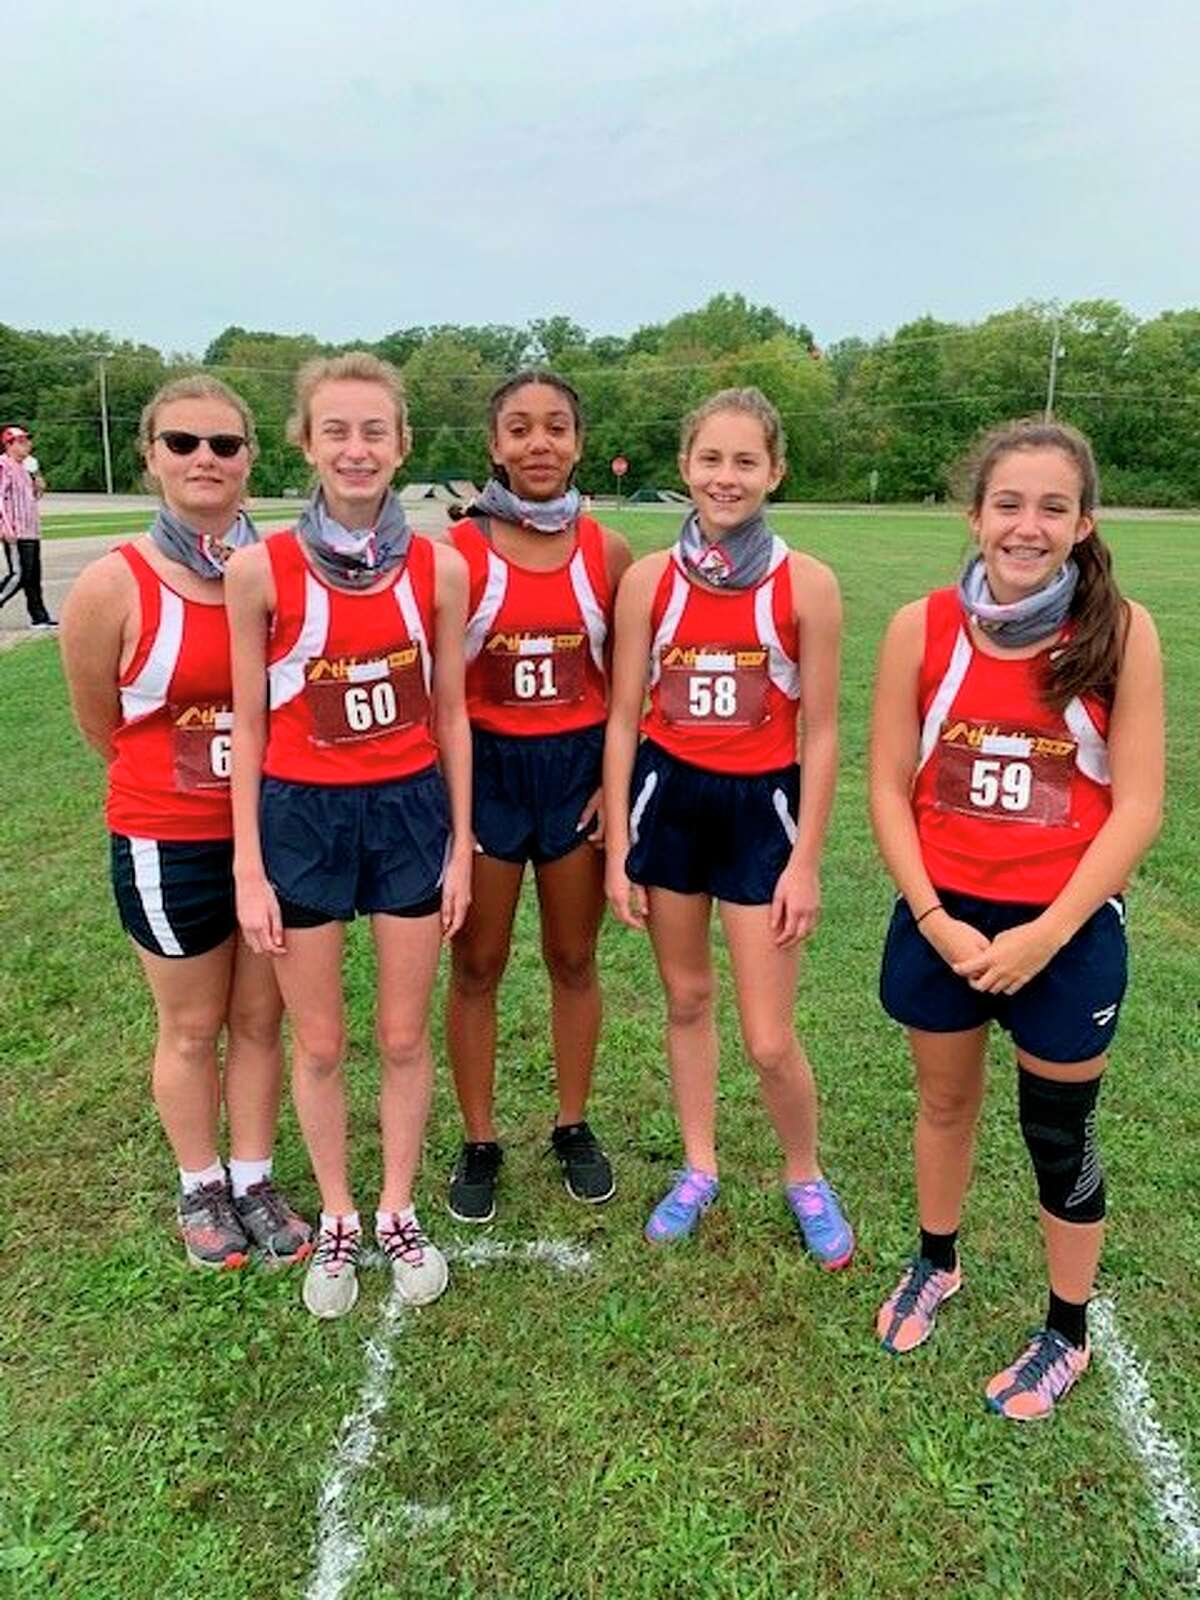 In this photo, Amelia Thompson, Kaitlin Buys, Jackie Cole, Samara Turner and Isabelle Wahl are members of the girls team. (Courtesy photo)